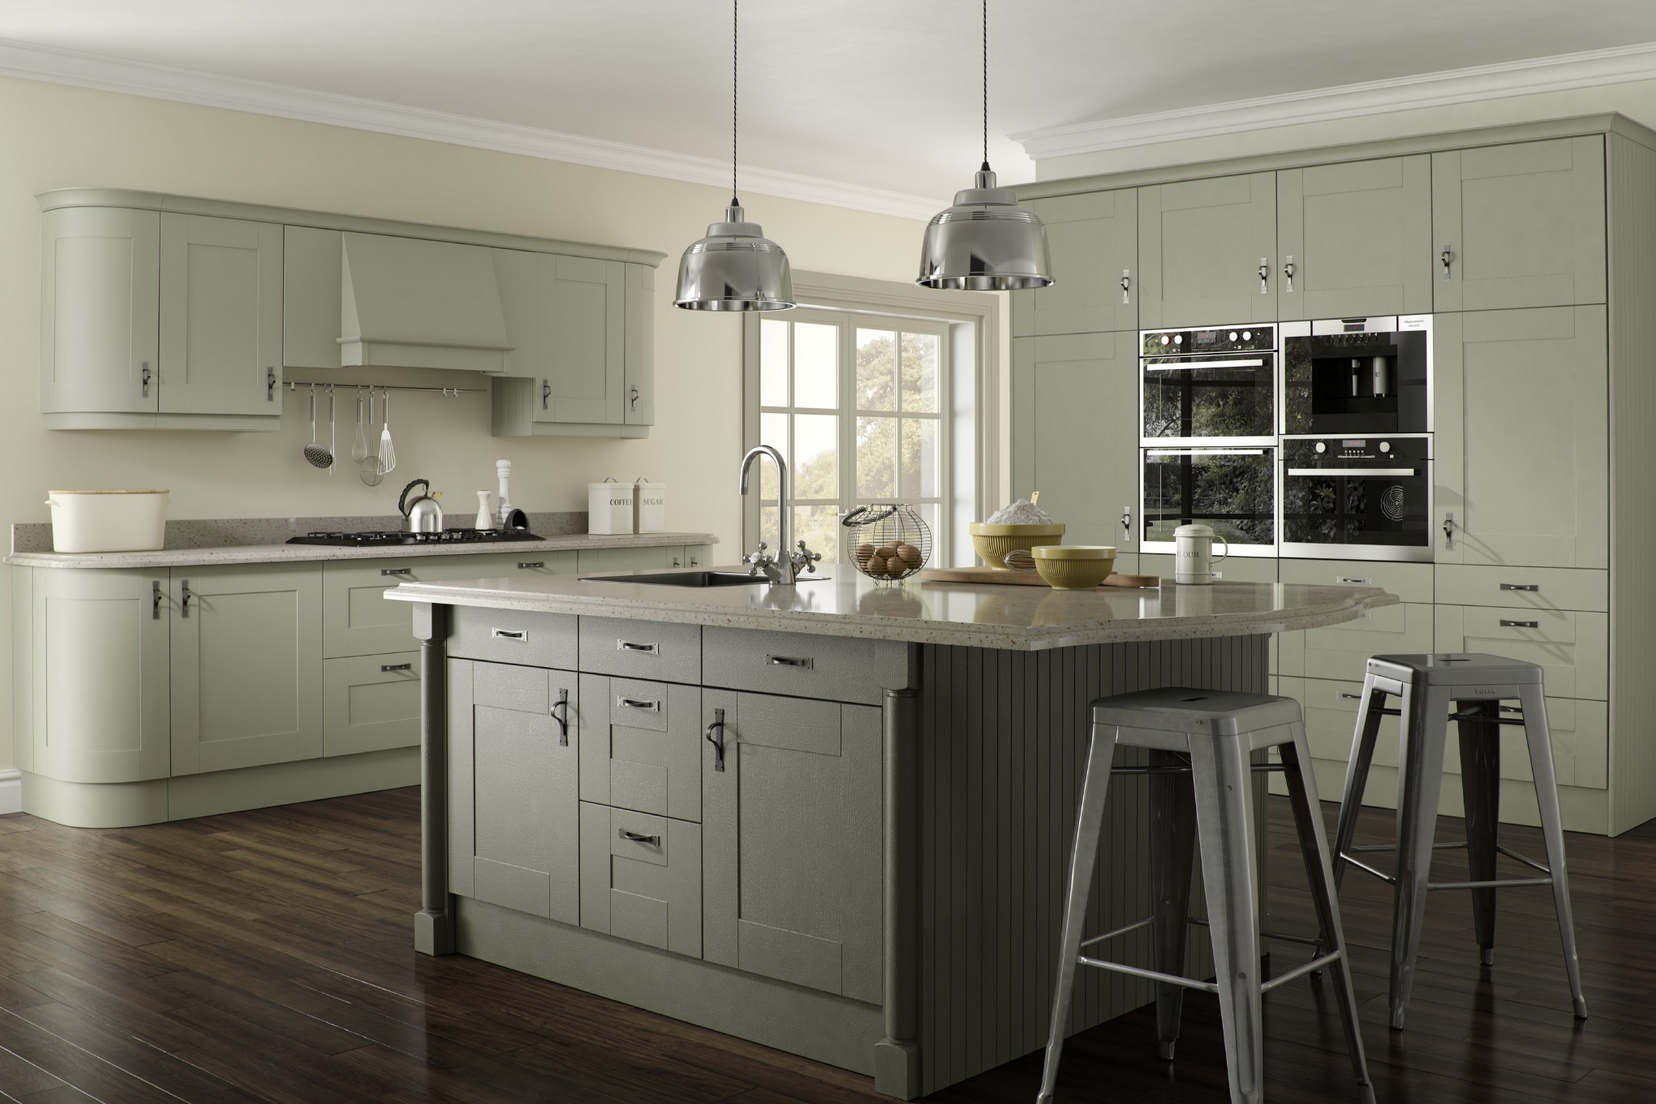 olive grey and cream kitchen Google Search Green